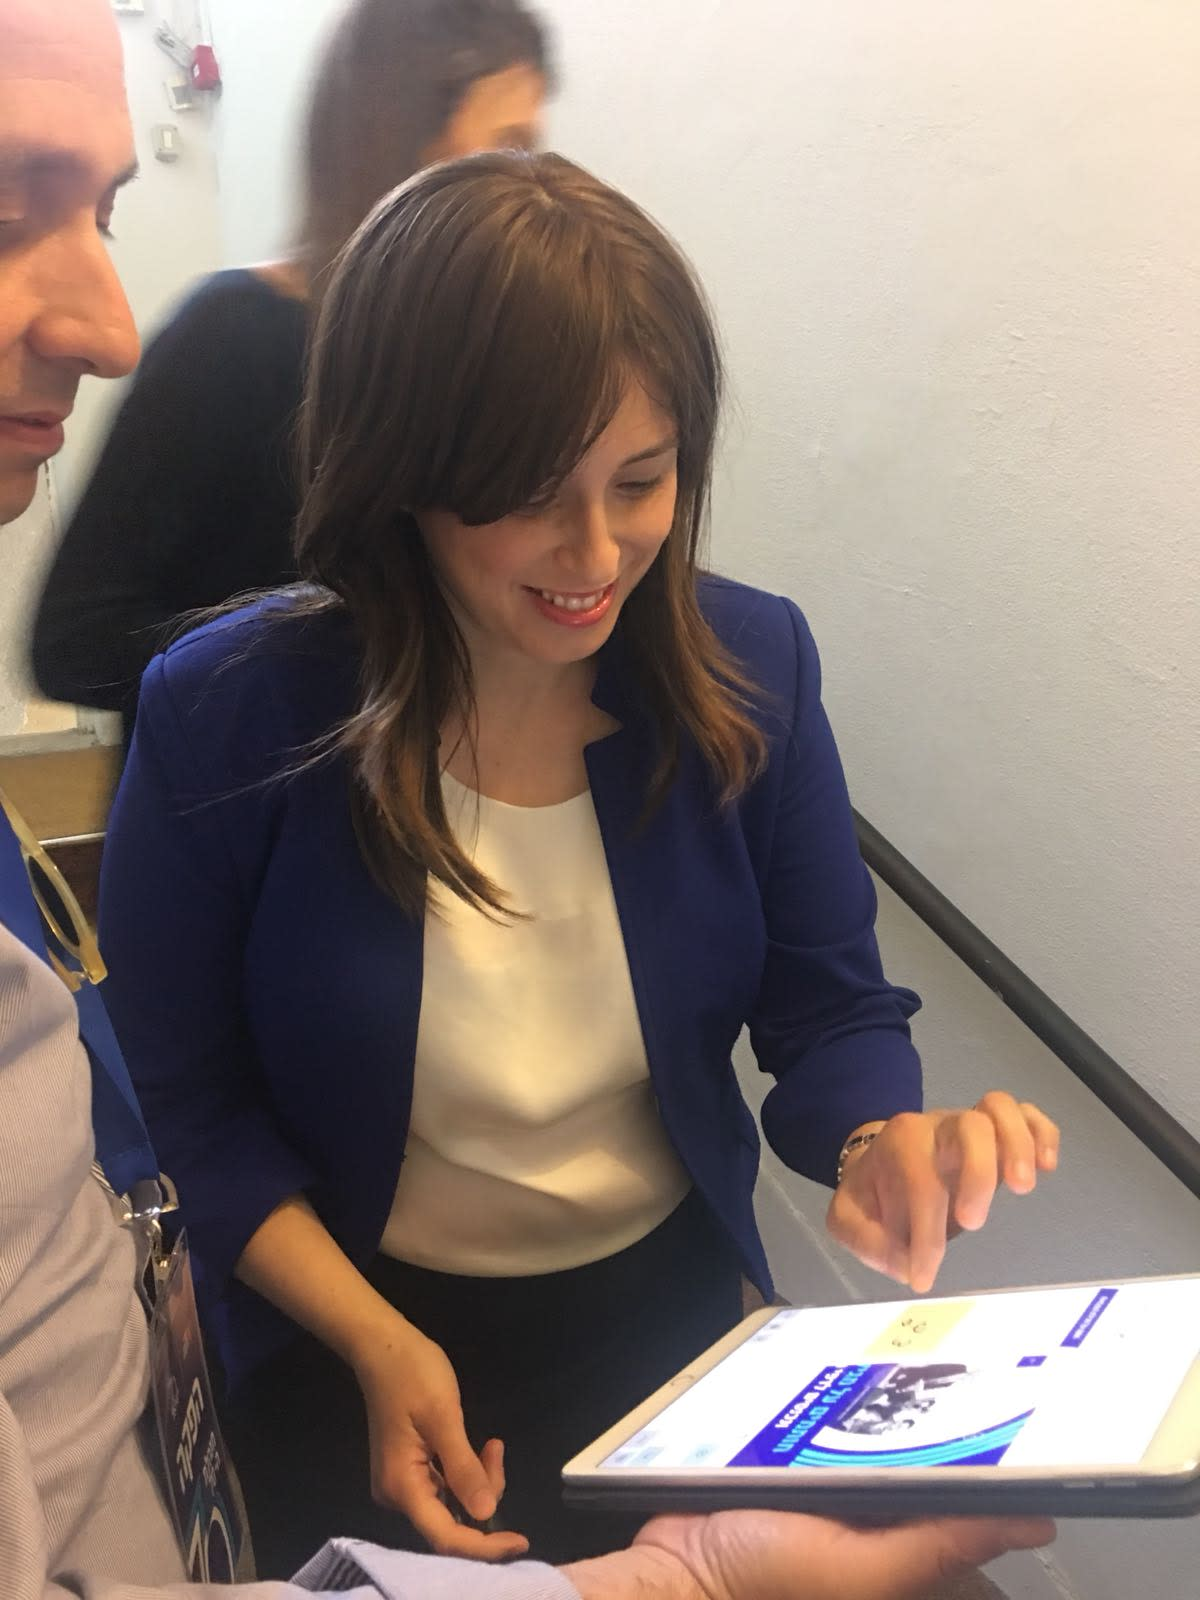 Deputy Foreign Minister Tzipi Hotovely signing the digital declaration of independence at a special cabinet meeting at independence hall in Tel Aviv in honor of Israel's 70th Independence Day, April 2018 (YANIR COZIN / MAARIV)